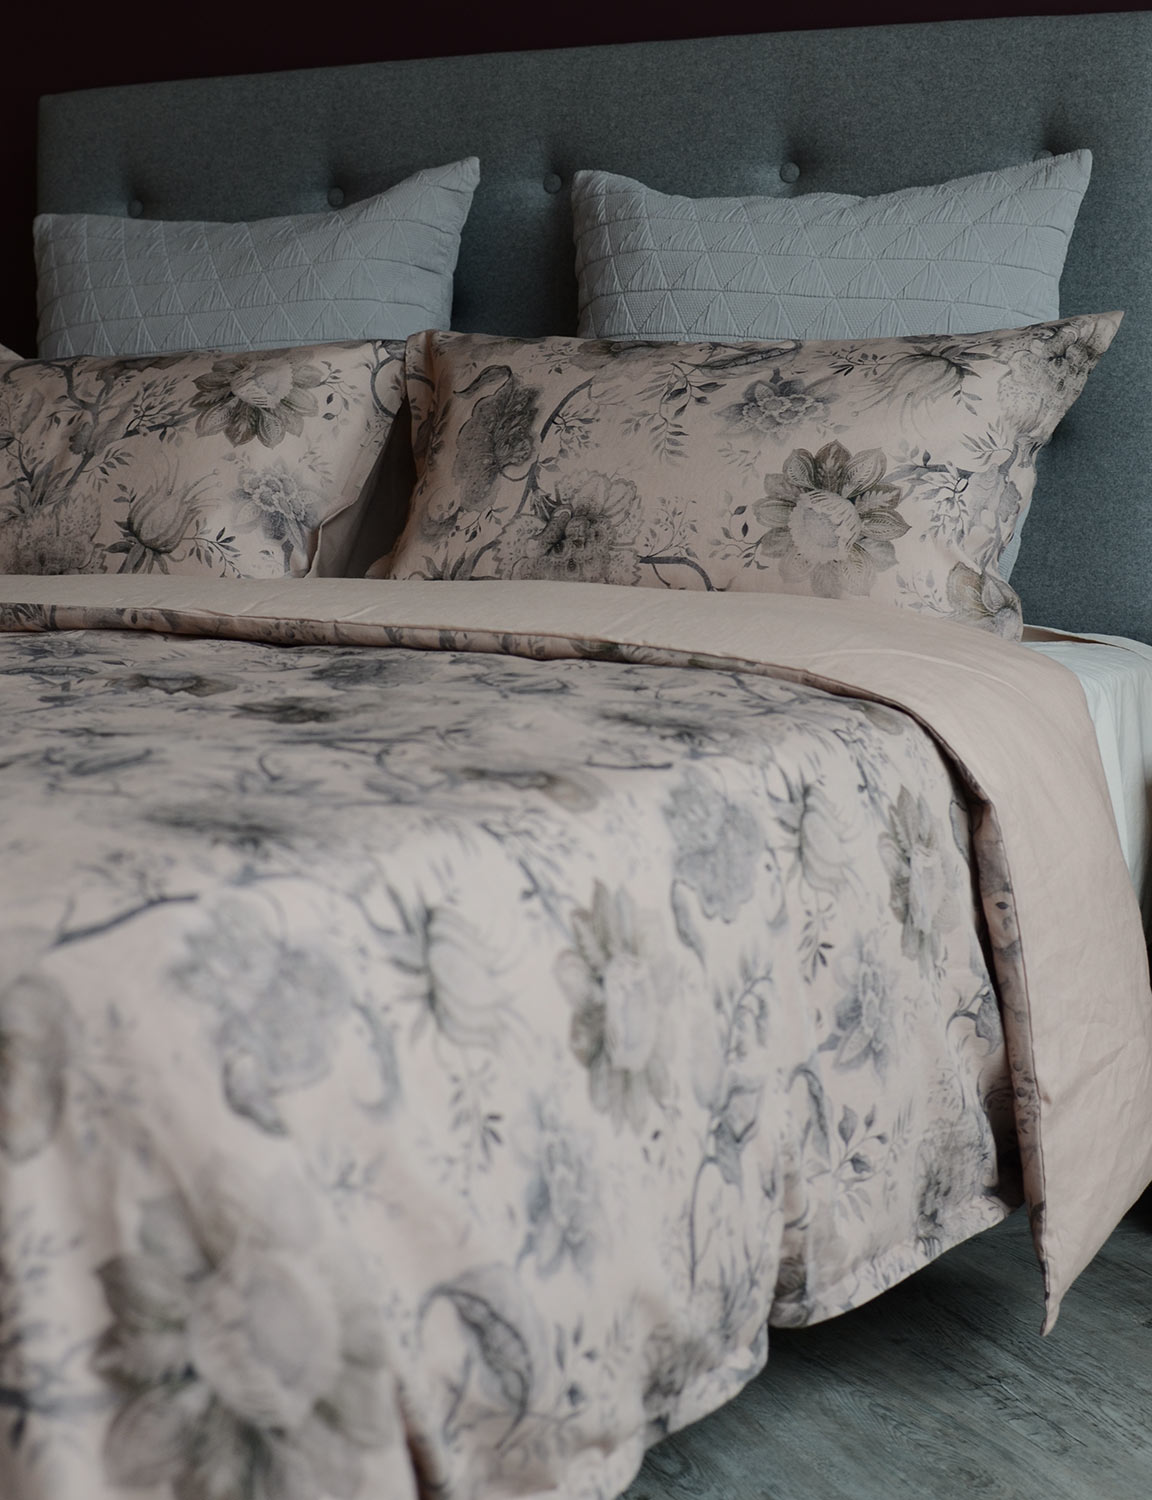 grey-stockholm-cushions-with-vintage print-bedding